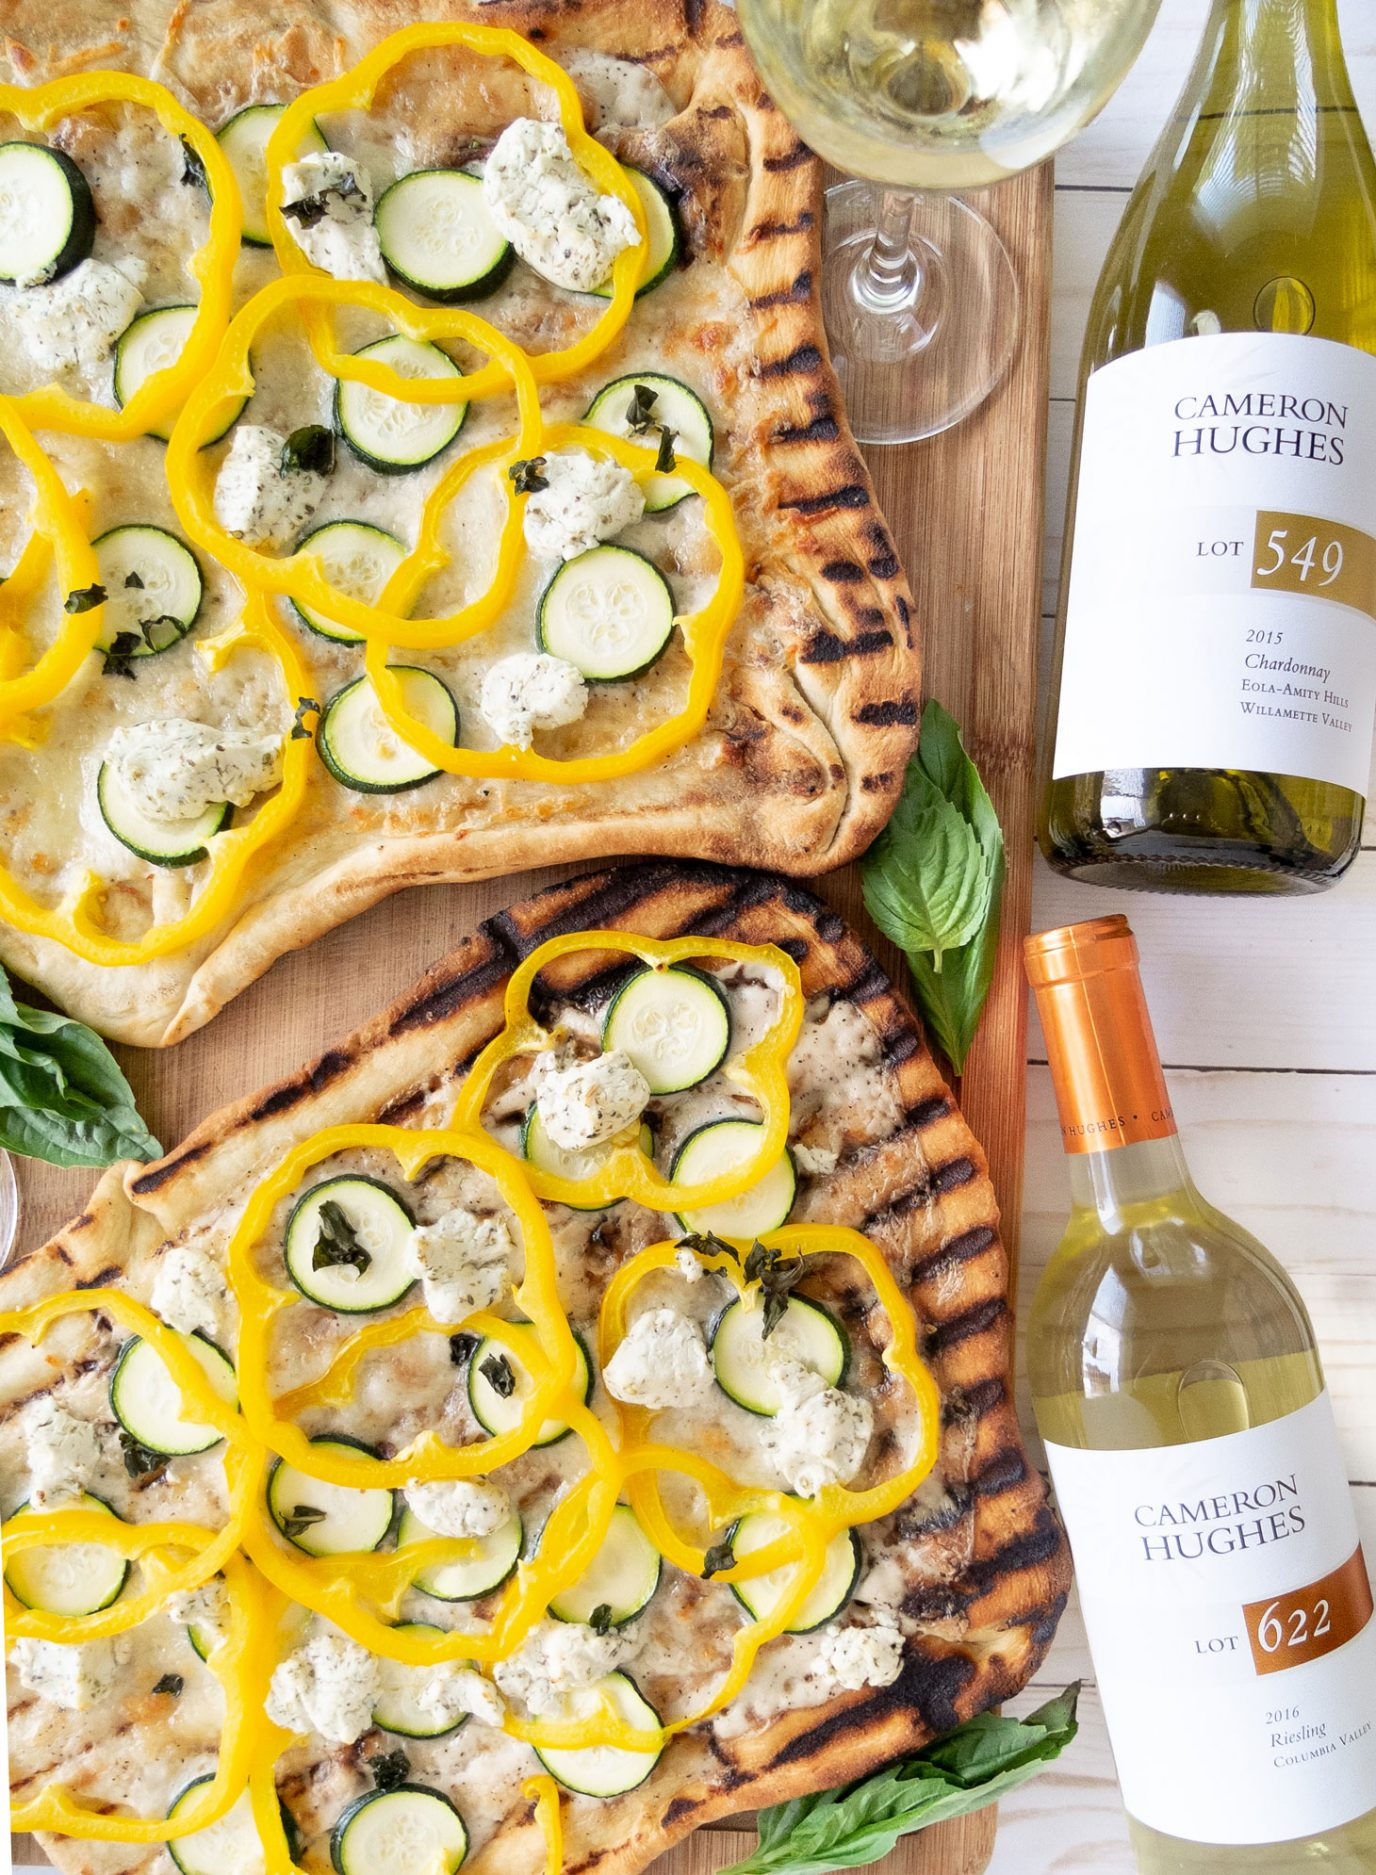 A summer stay at home date night idea. How to make yummy Veggie & Goat Cheese Pizza on the grill with your spouse while pairing crisp Cameron Hughes wines to your meal. Plus finally get the details on Brad's homemade pizza dough recipe! This post is intended for those of the ages 21+. ElleTalk #pizza #winenight #datenight #datenightideas #grillrecipes #grill #summerrecipes #pizzanight #CHWineSummer